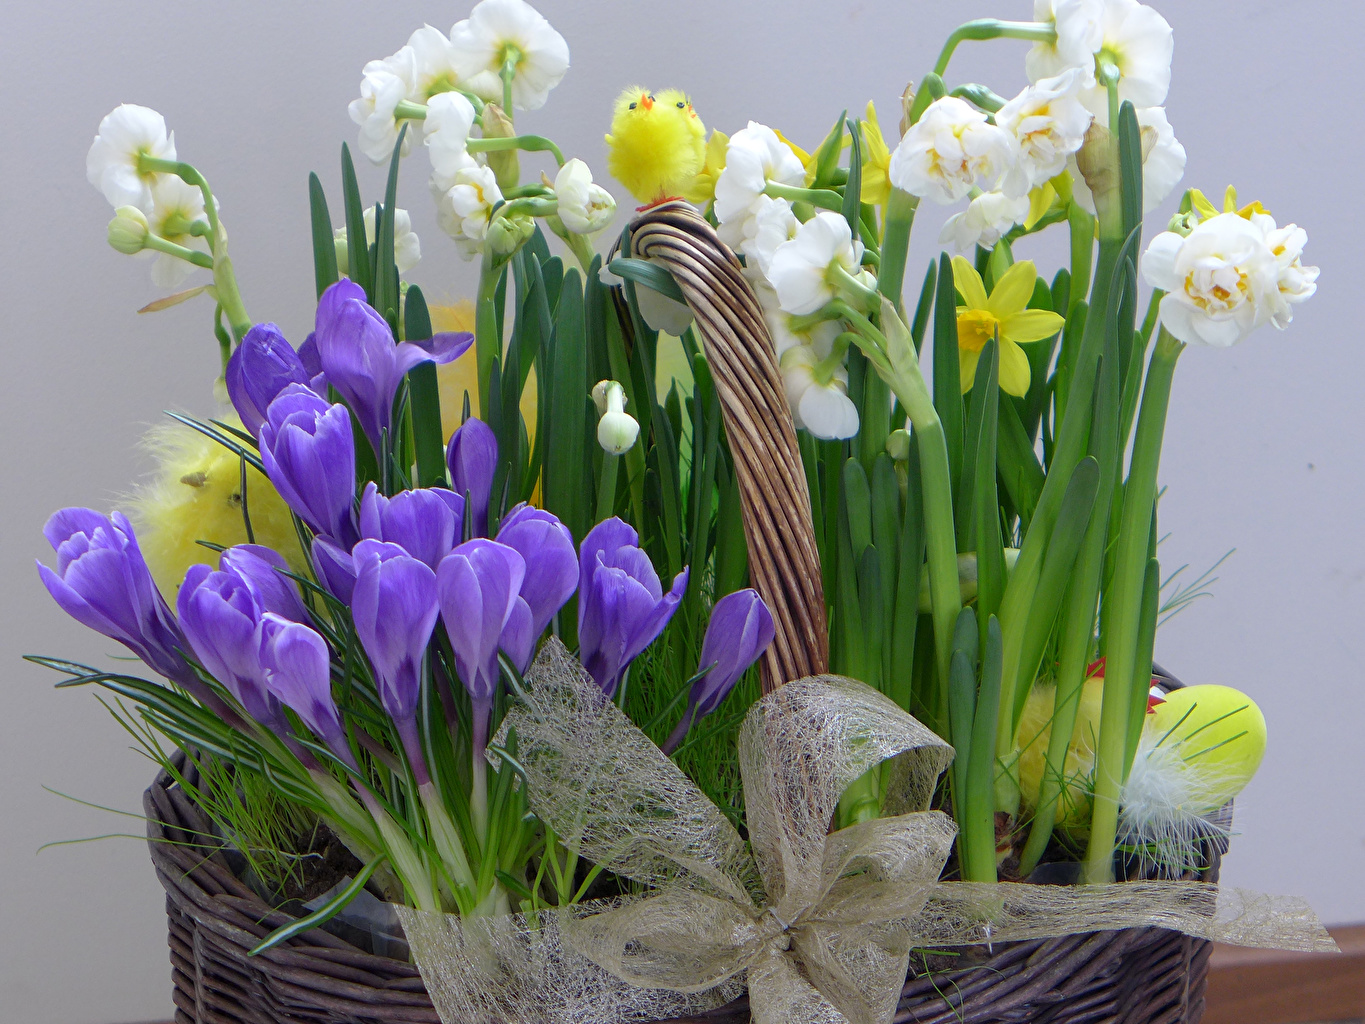 Pictures Chicks Flowers Crocuses Narcissus bow Daffodils Bowknot